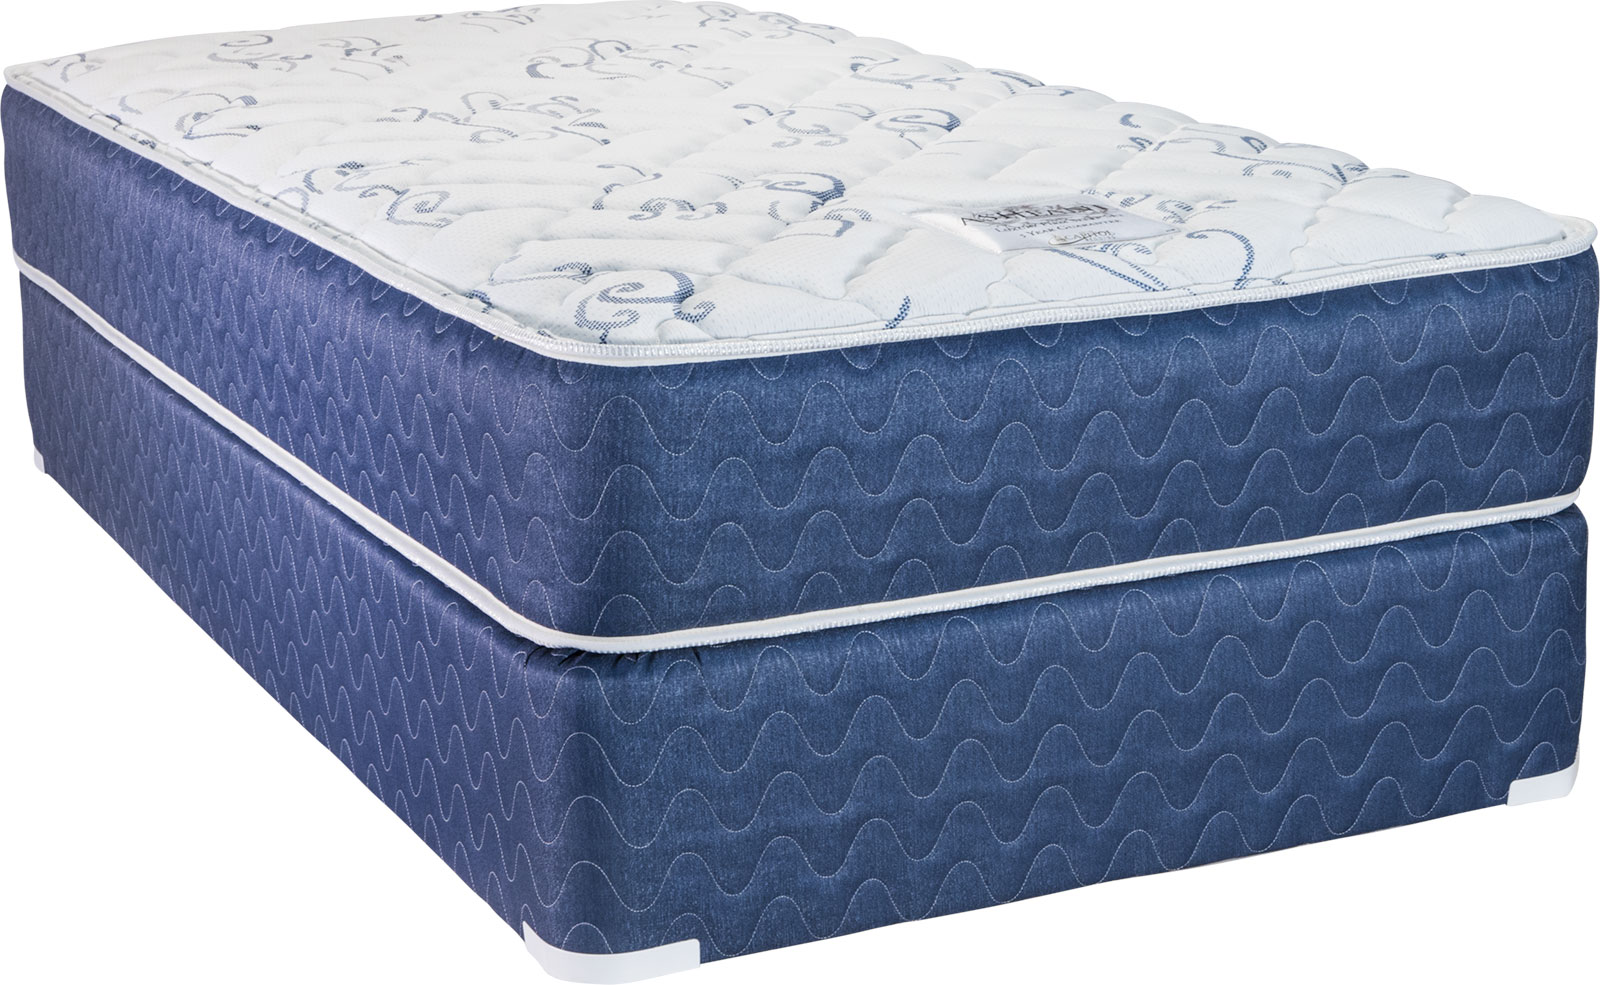 Icomfort Mattress Reviews >> Capital Bedding - Mattress Reviews | GoodBed.com